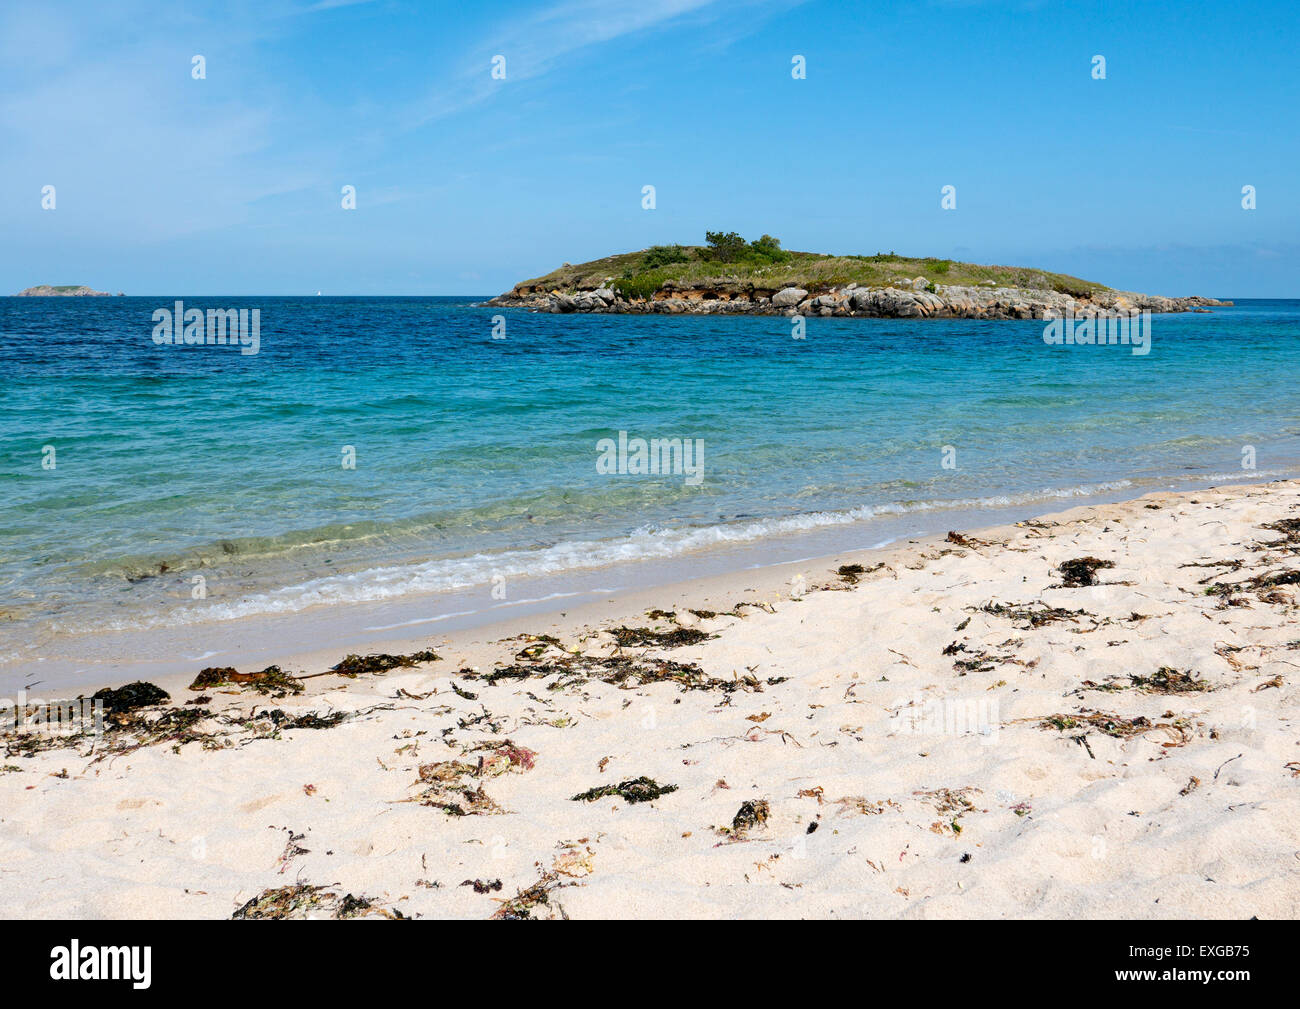 Pelistry Bay beach and Toll's island, St. Mary's, Isles of Scilly, Cornwall England. - Stock Image